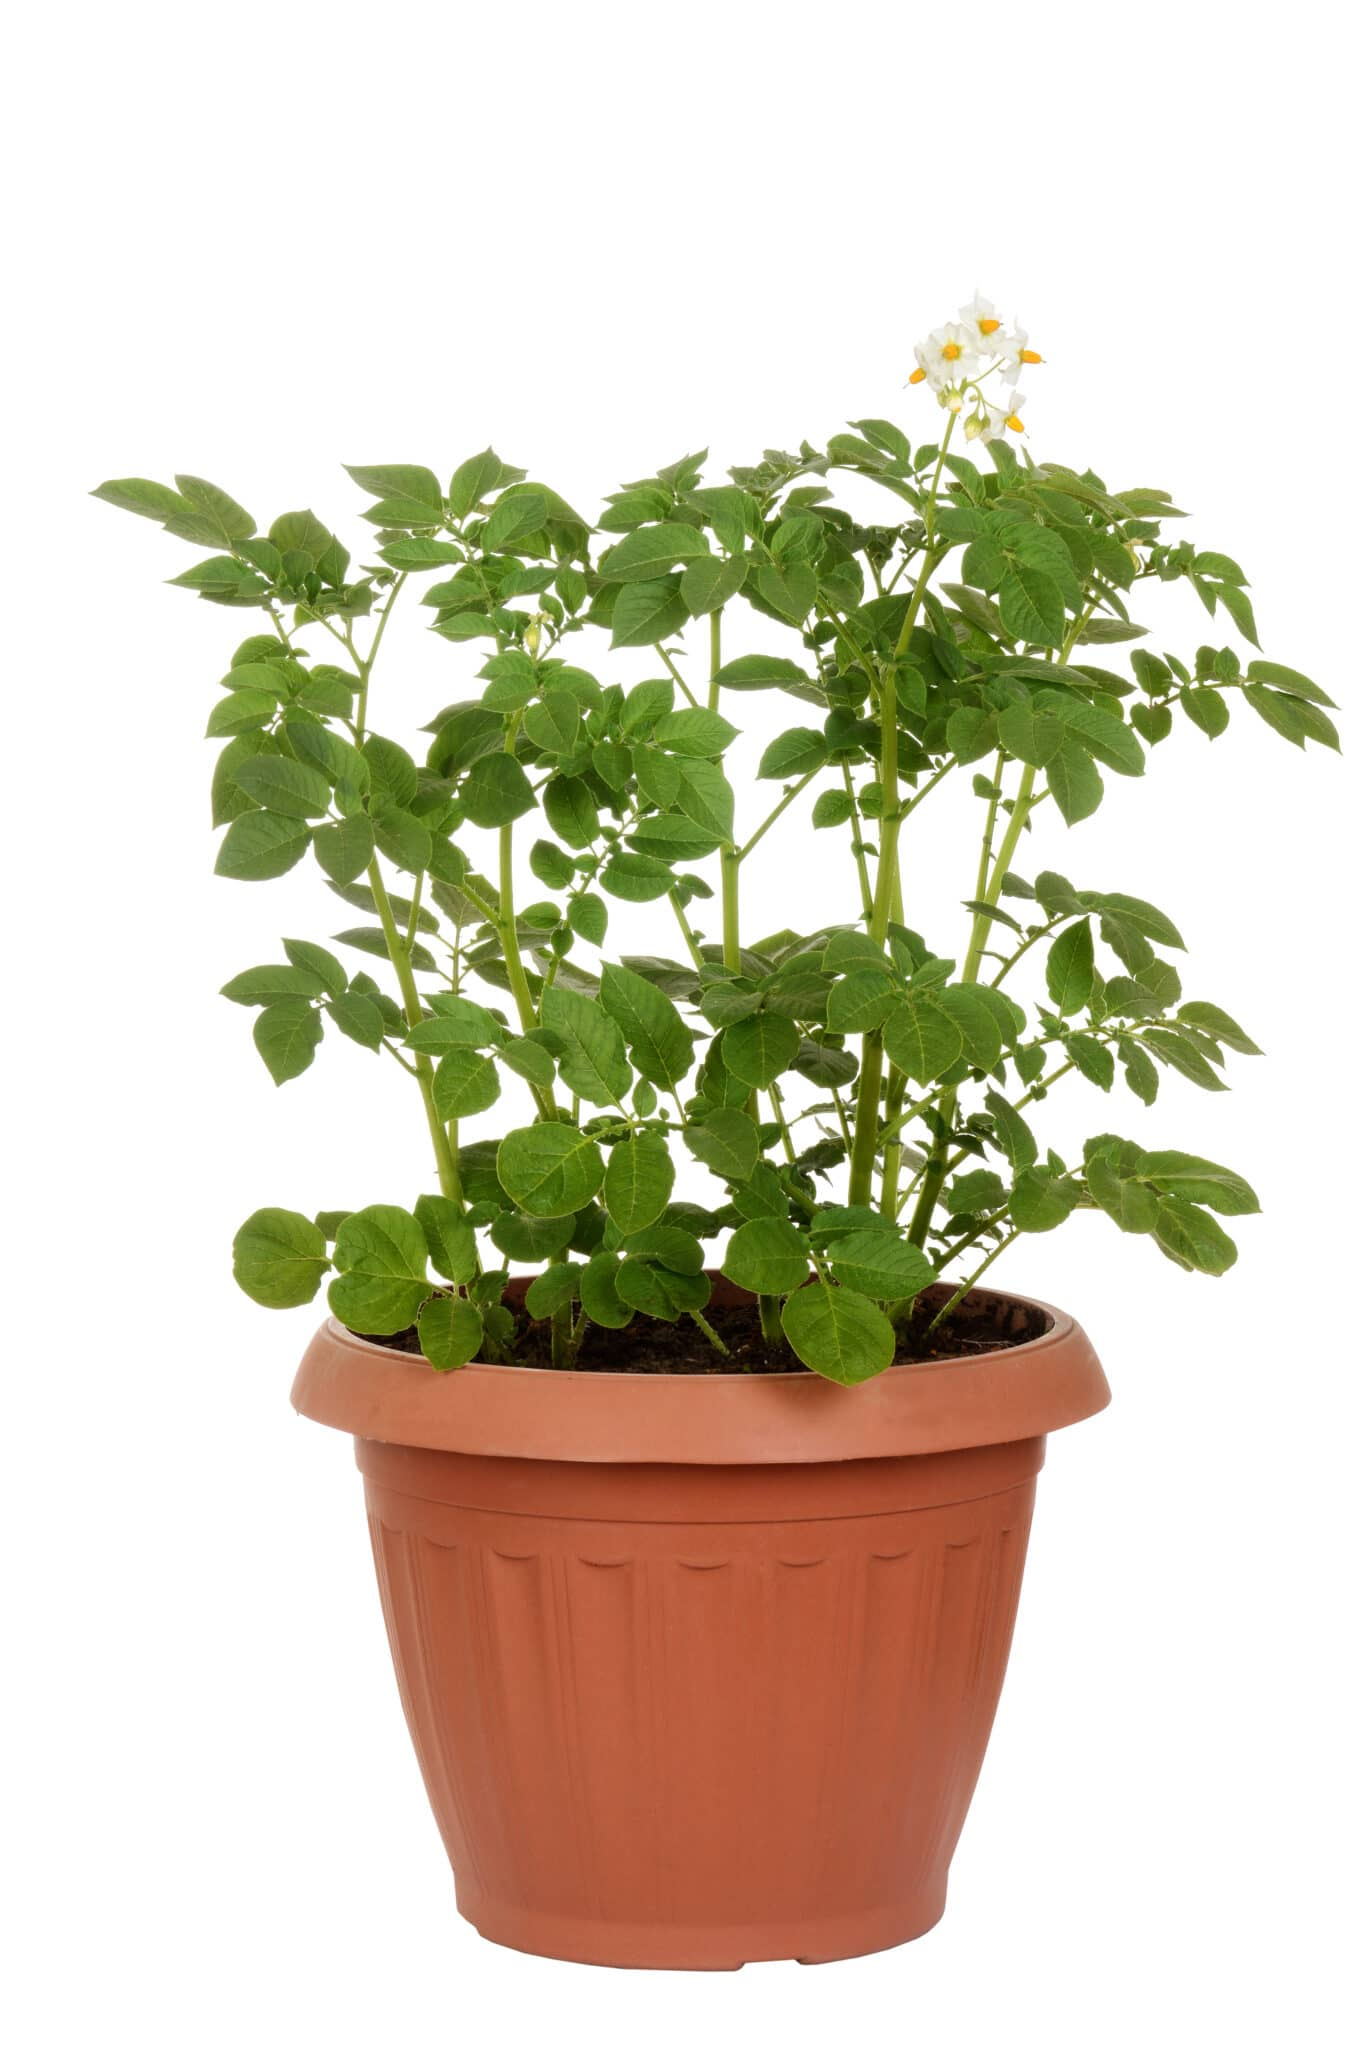 A potato plant growing in a large pot.